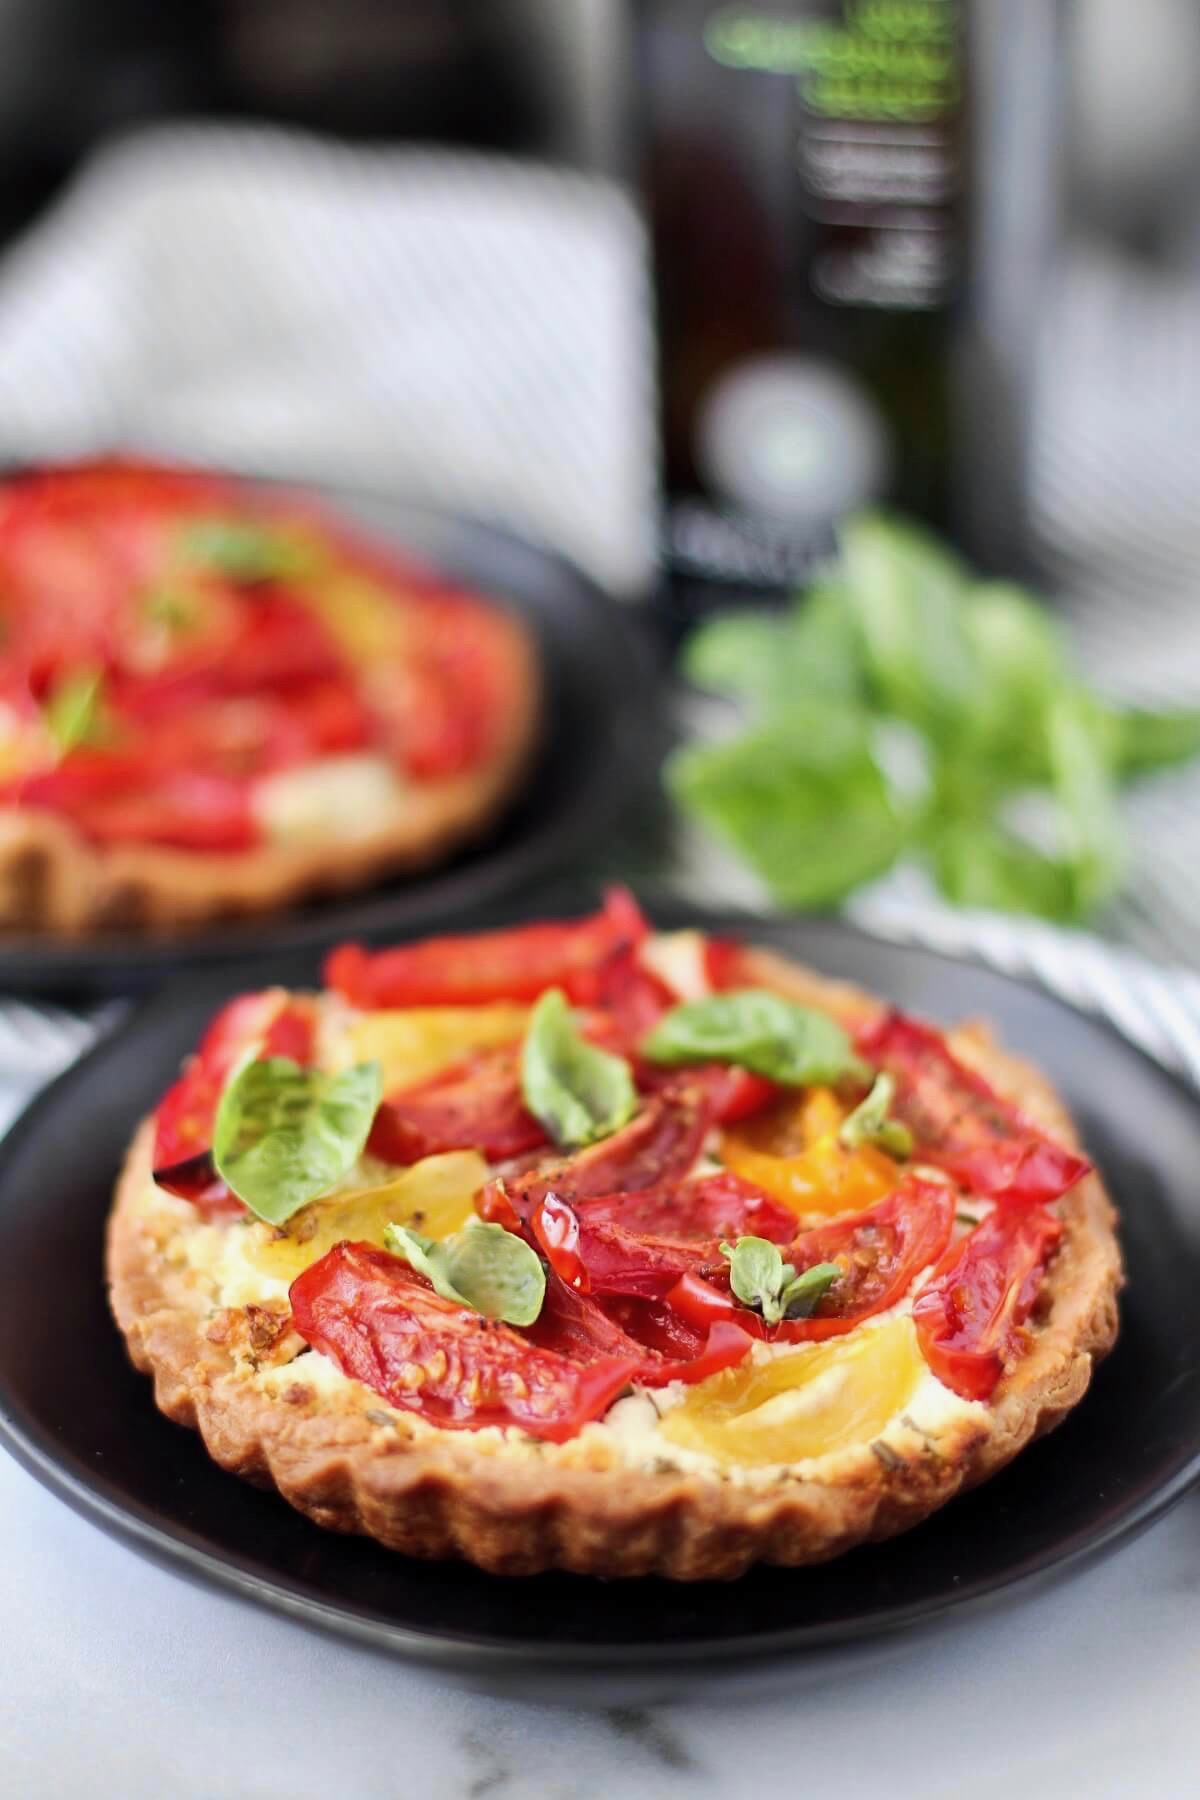 Tomato and Goat Cheese Tarts on plates.